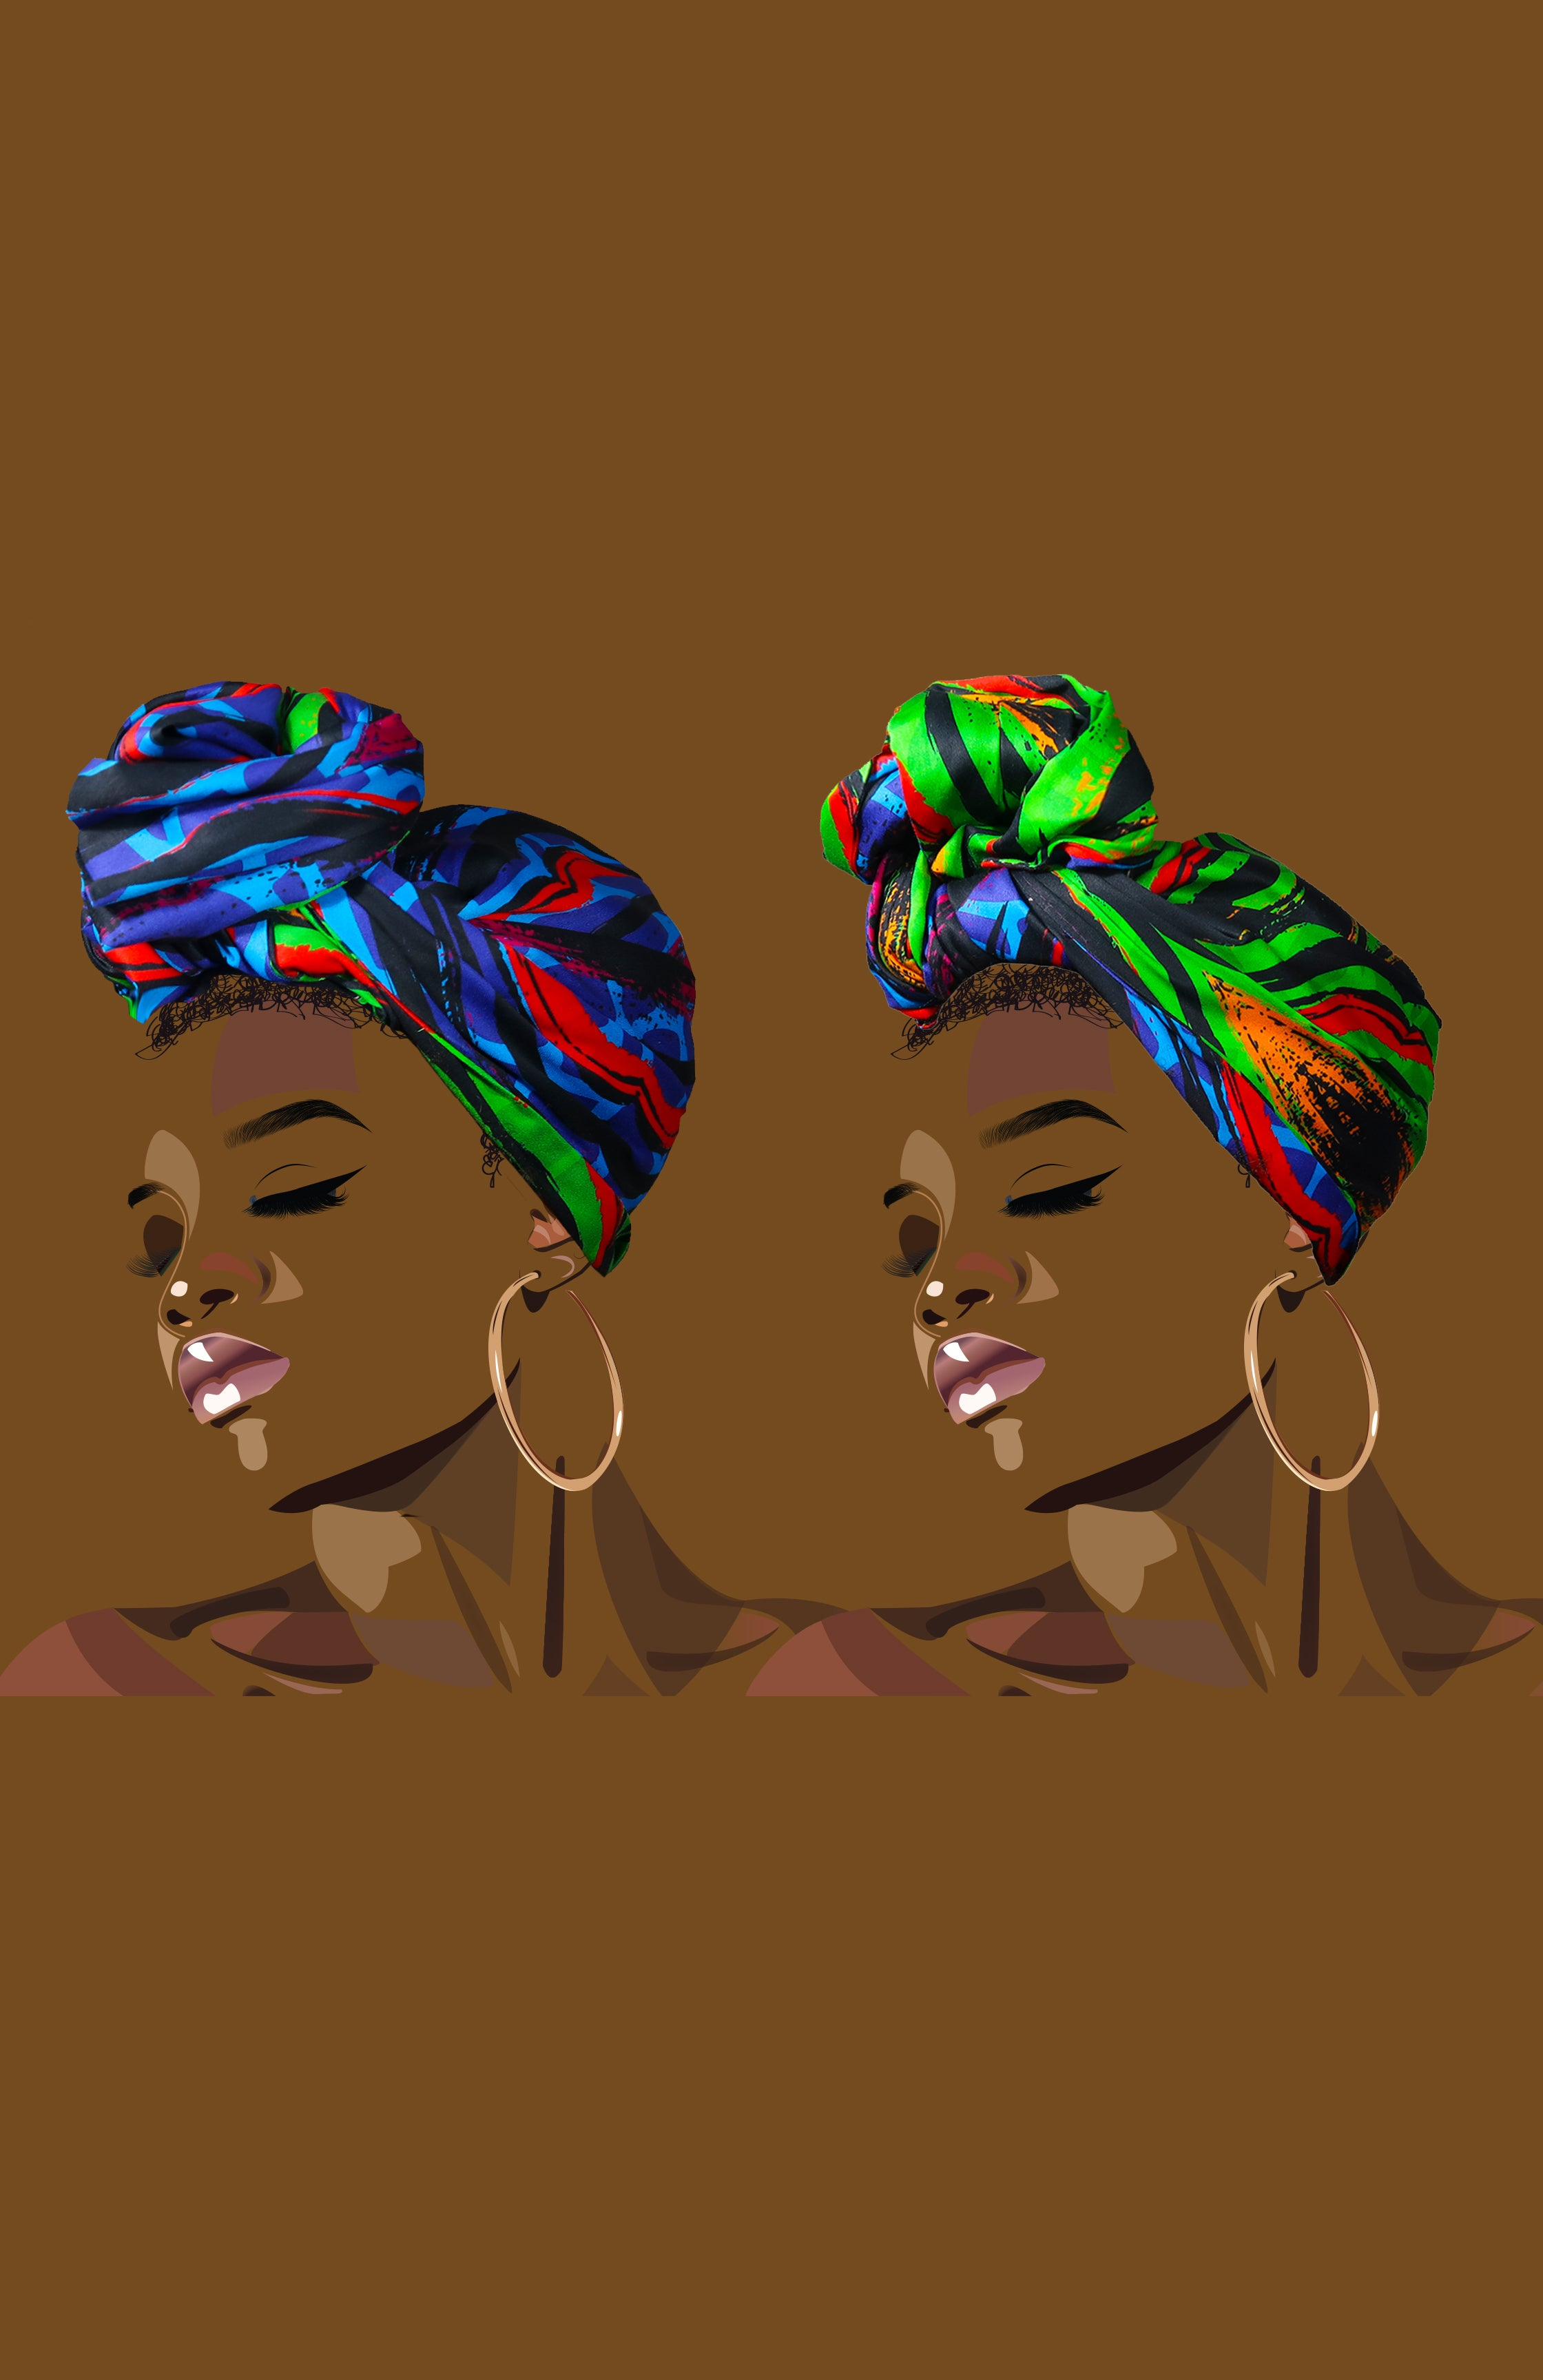 Reversible Black Panther King/Queen Head Wrap - African Wax - Ankara - Chinero Nnamani